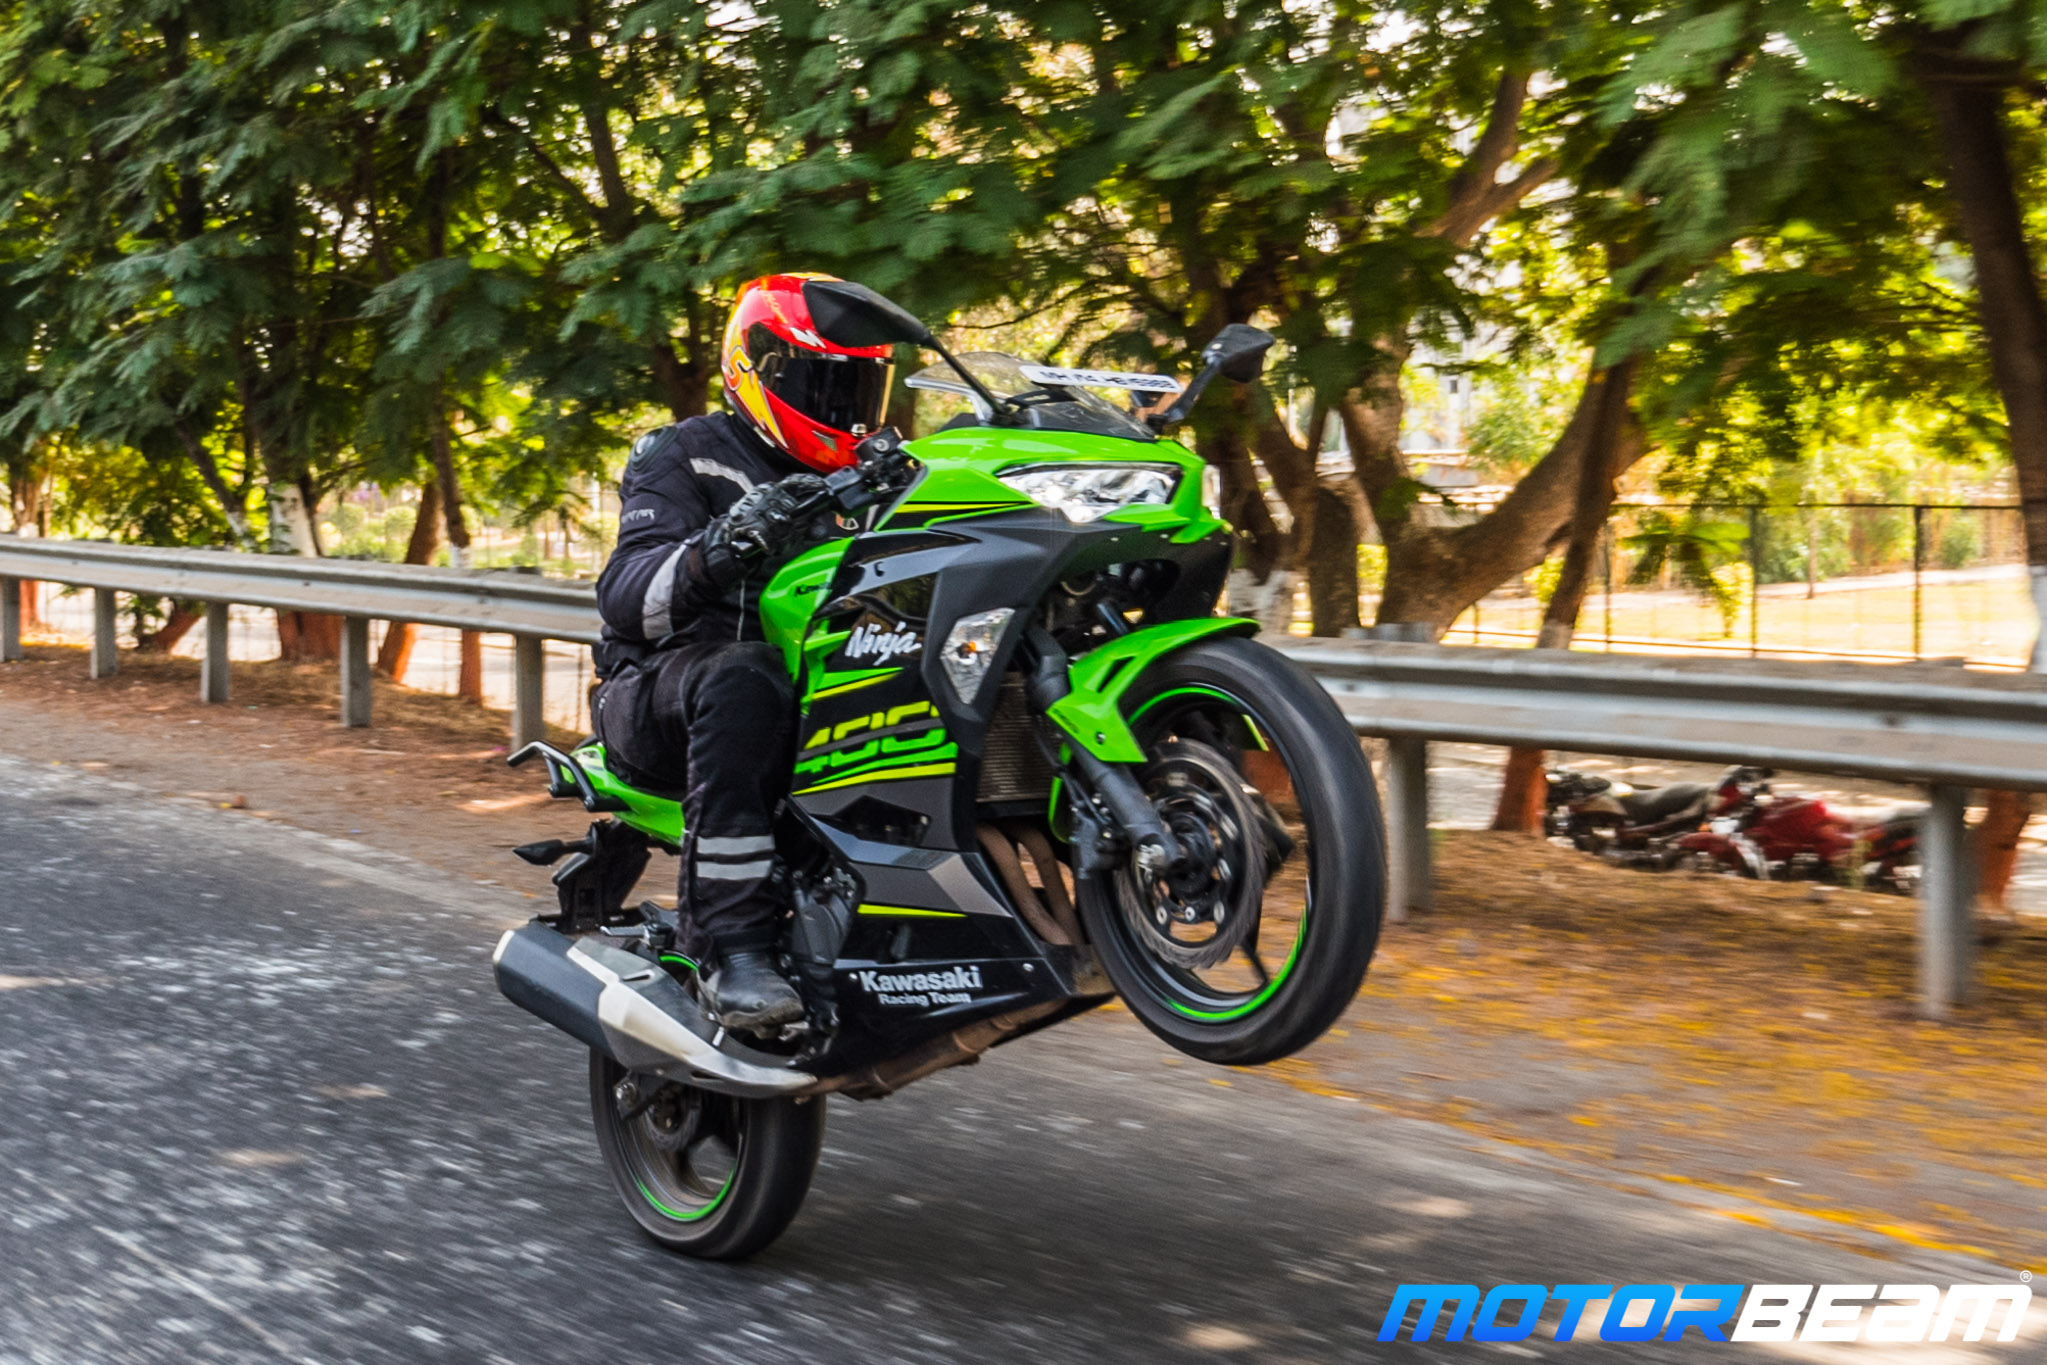 Kawasaki Ninja 400 Discontinued, Not Coming Back